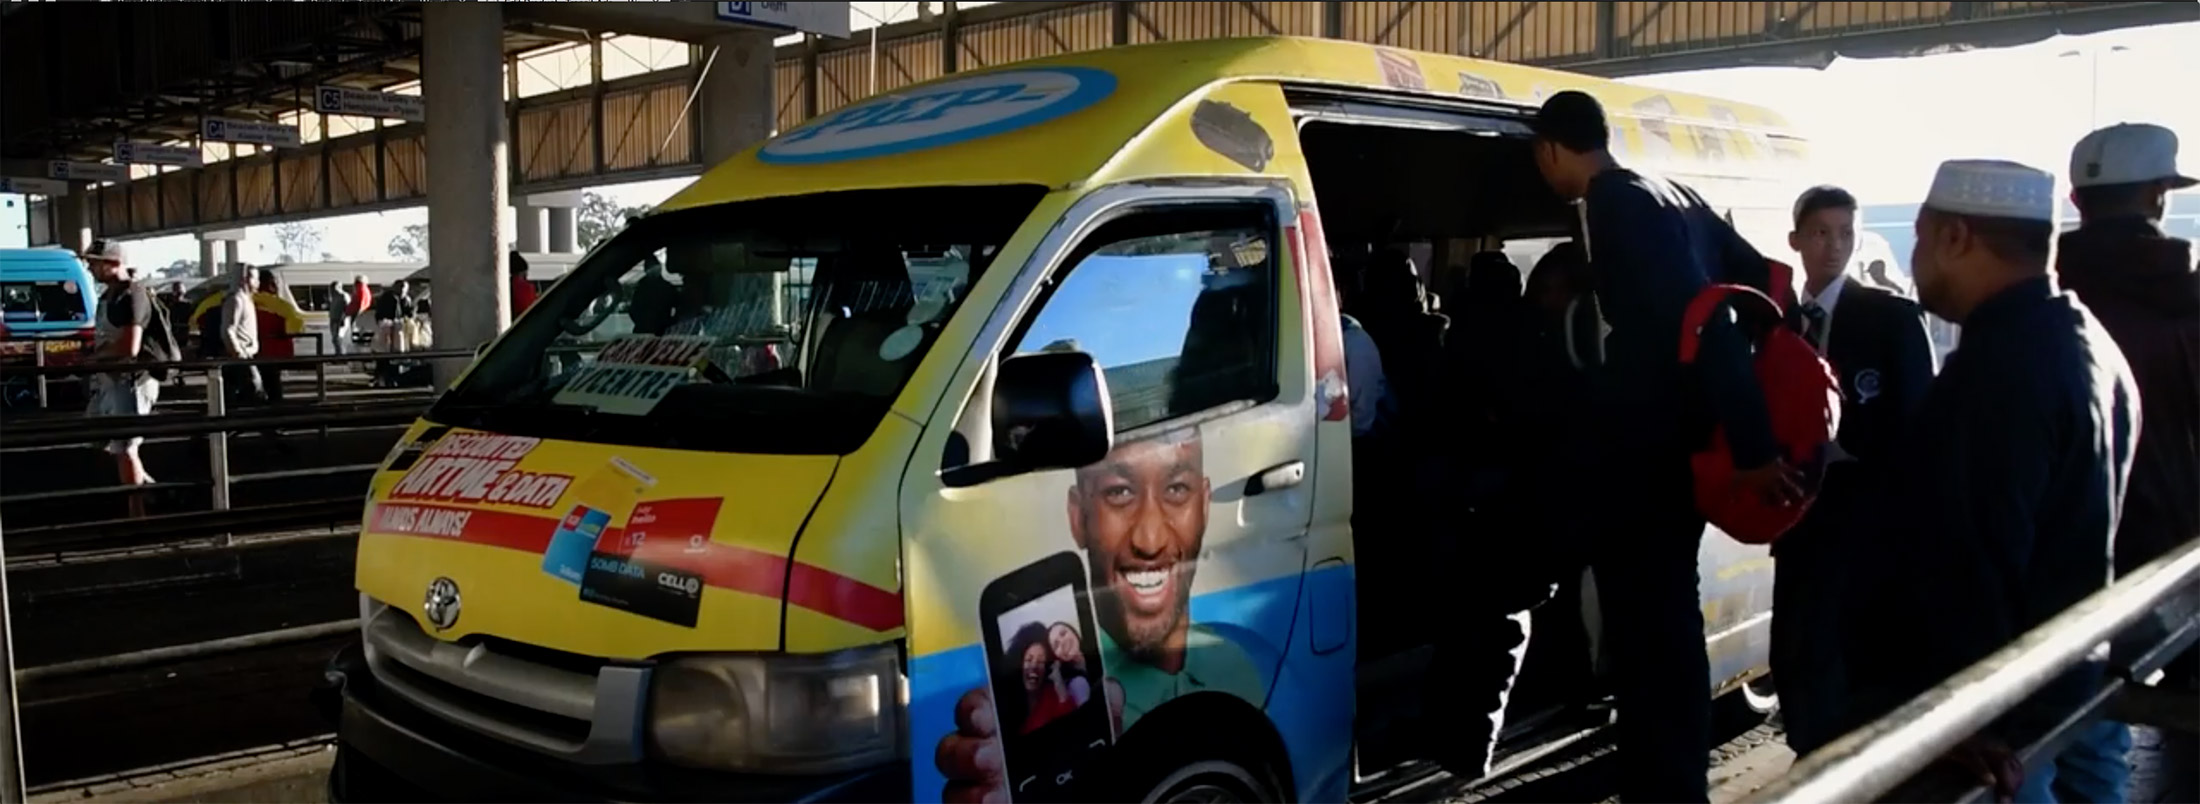 Taxi Commuter Video Image